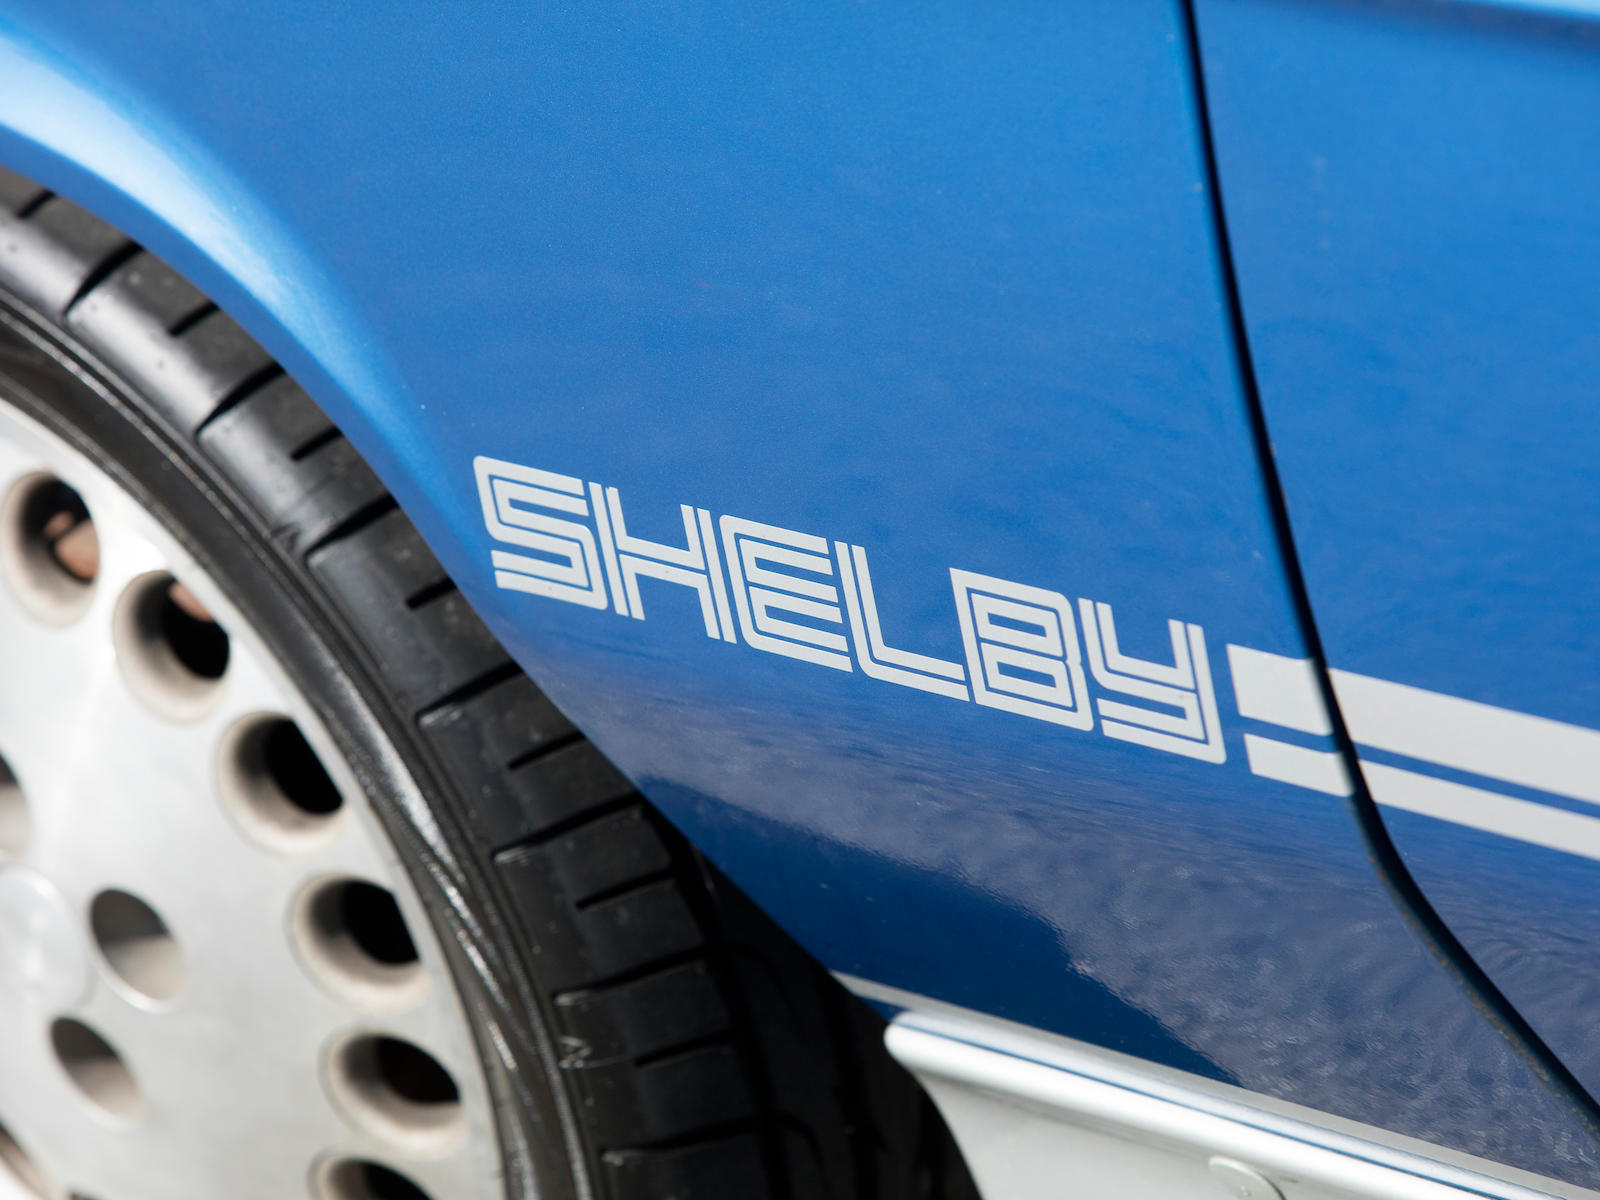 1983 Dodge Shelby Charger rear 3/4